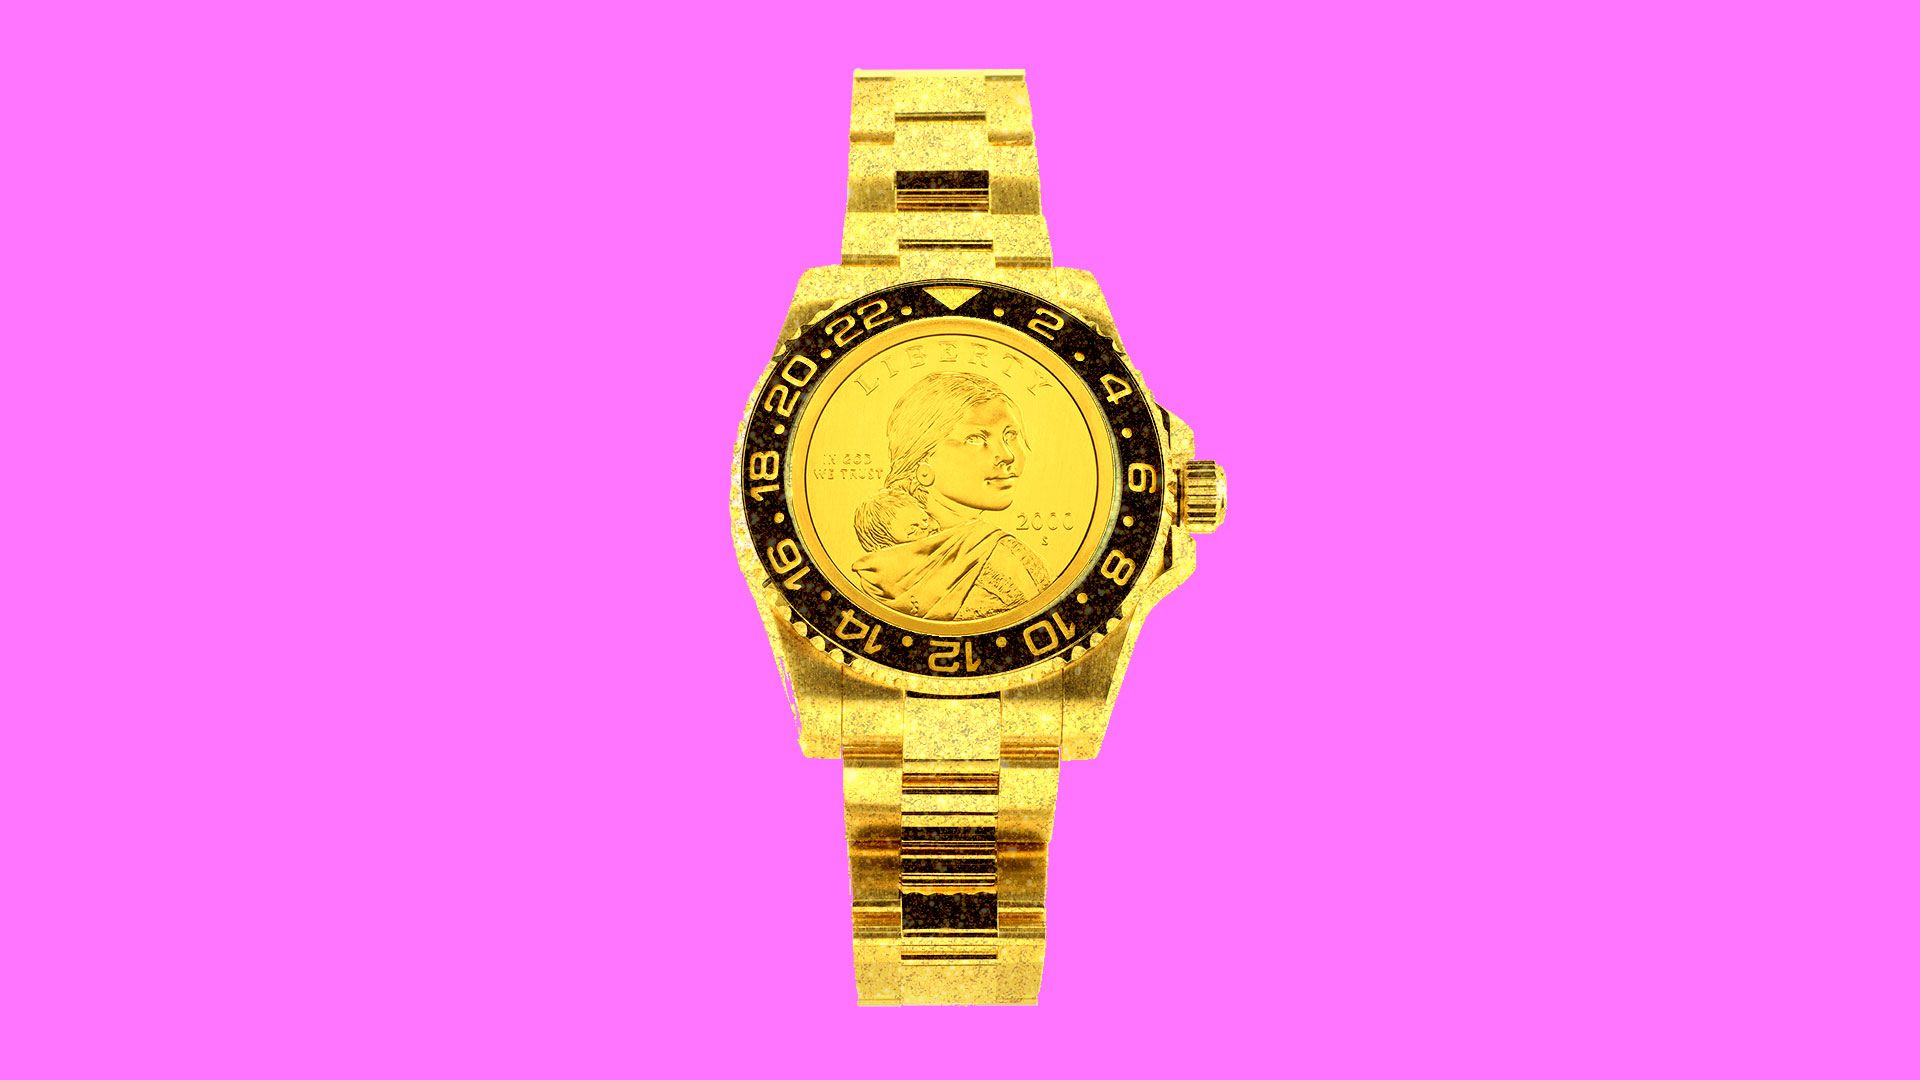 Illustration of a gold watch with a dollar coin as the face.